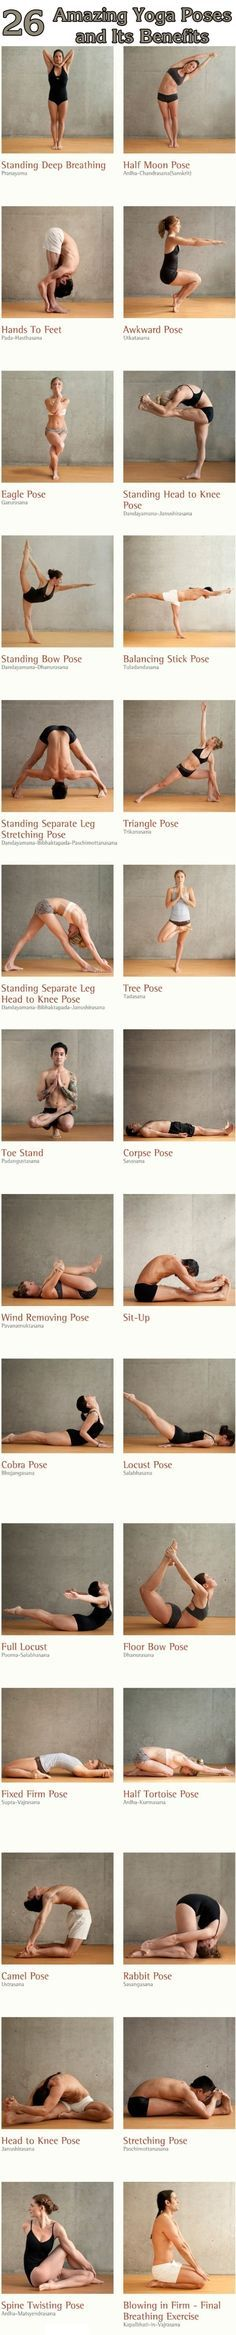 Amazing Benefits Of Yoga :Overall fitness of body is achieved through its various techniques of Asanas/Postures, Breathing/Pranayama and Meditation.